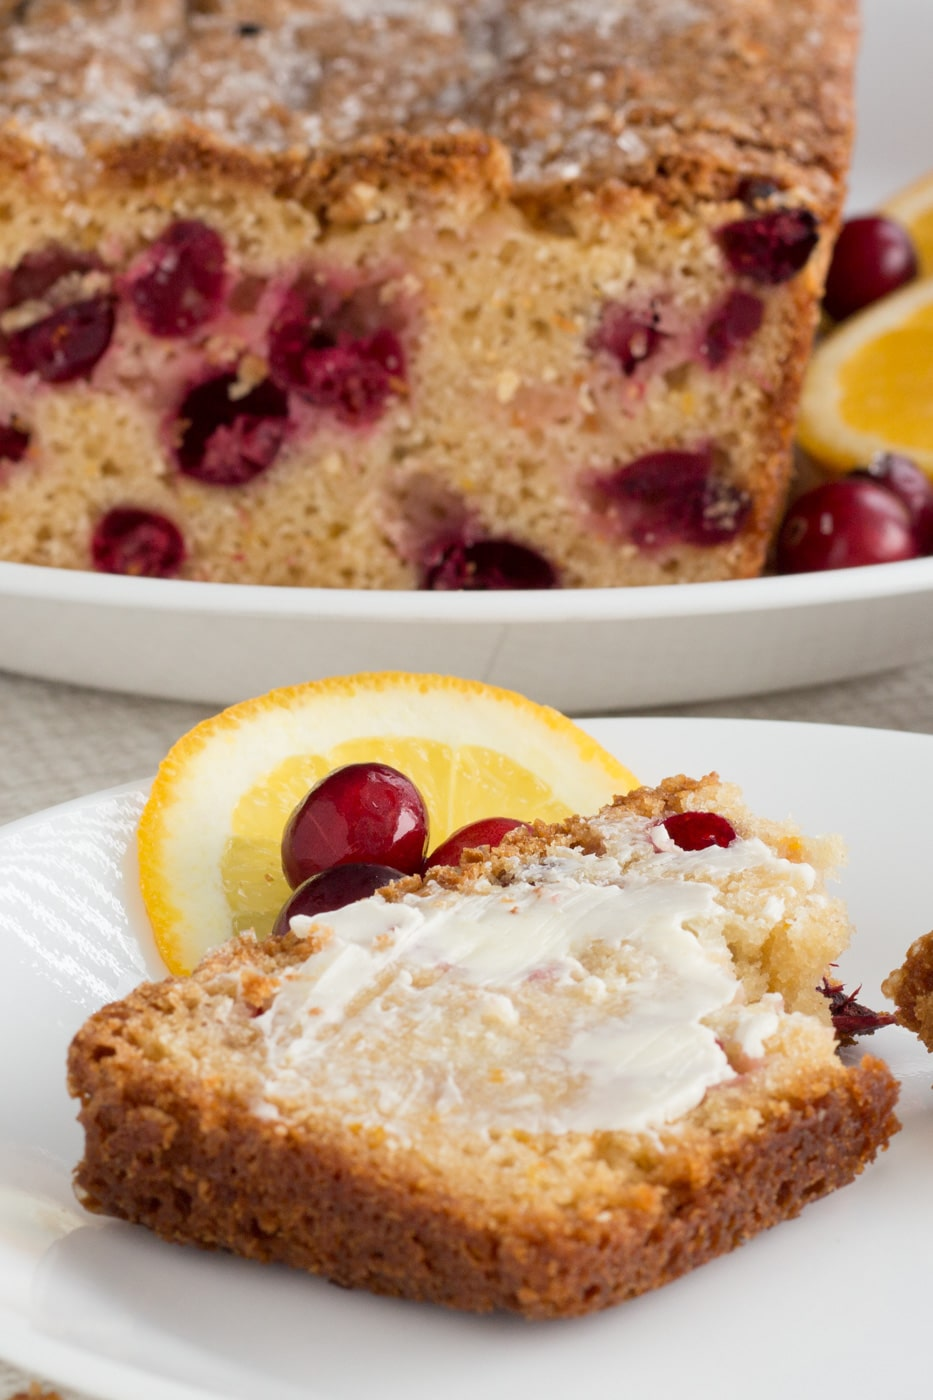 Cranberry quick bread slice with butter on a plate with cranberries and orange slices